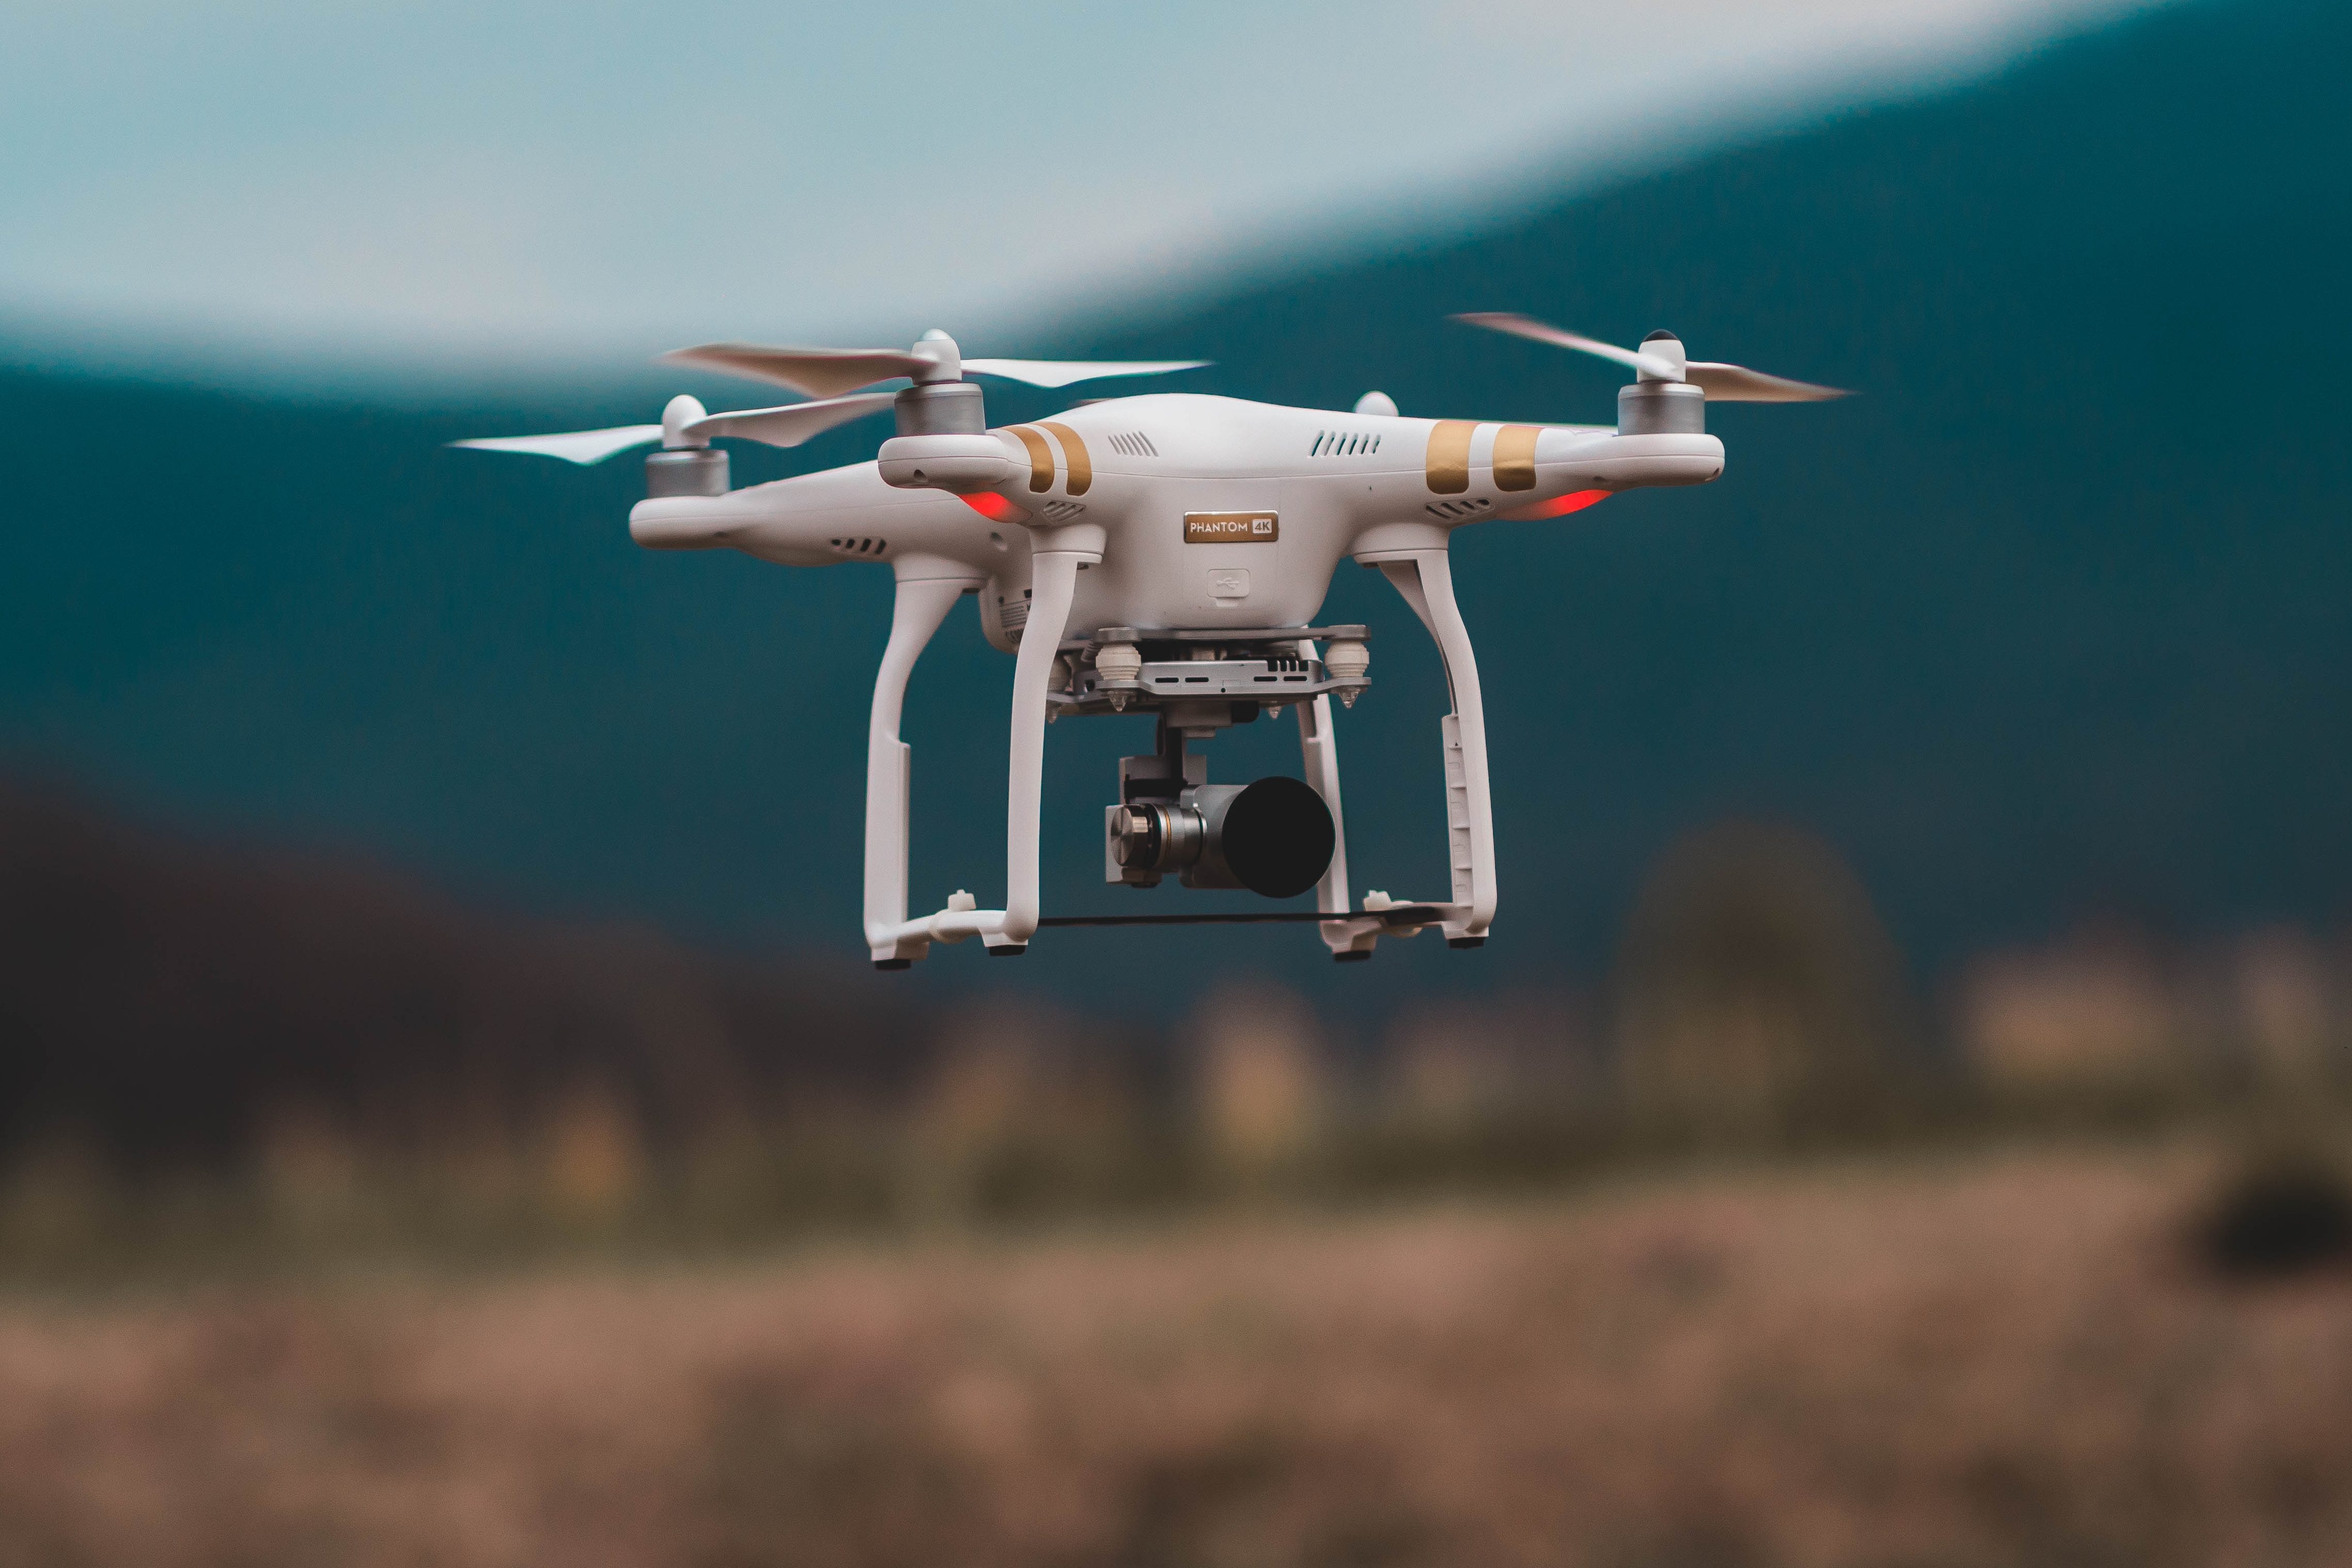 Drones will be one of the areas of discussion at the Pint of Science event in Medway